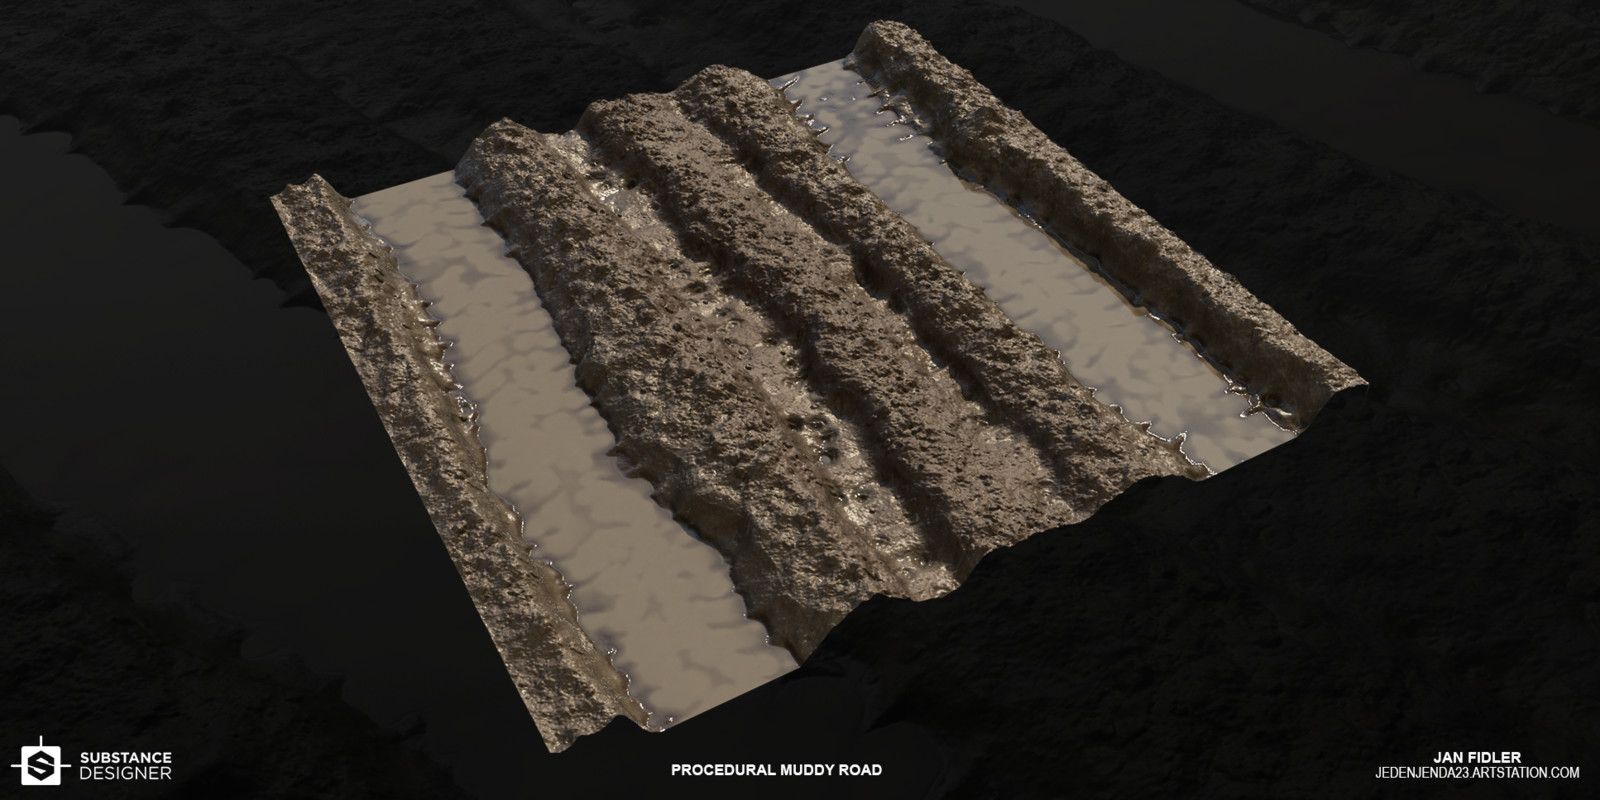 Muddy Road (Substance Designer)